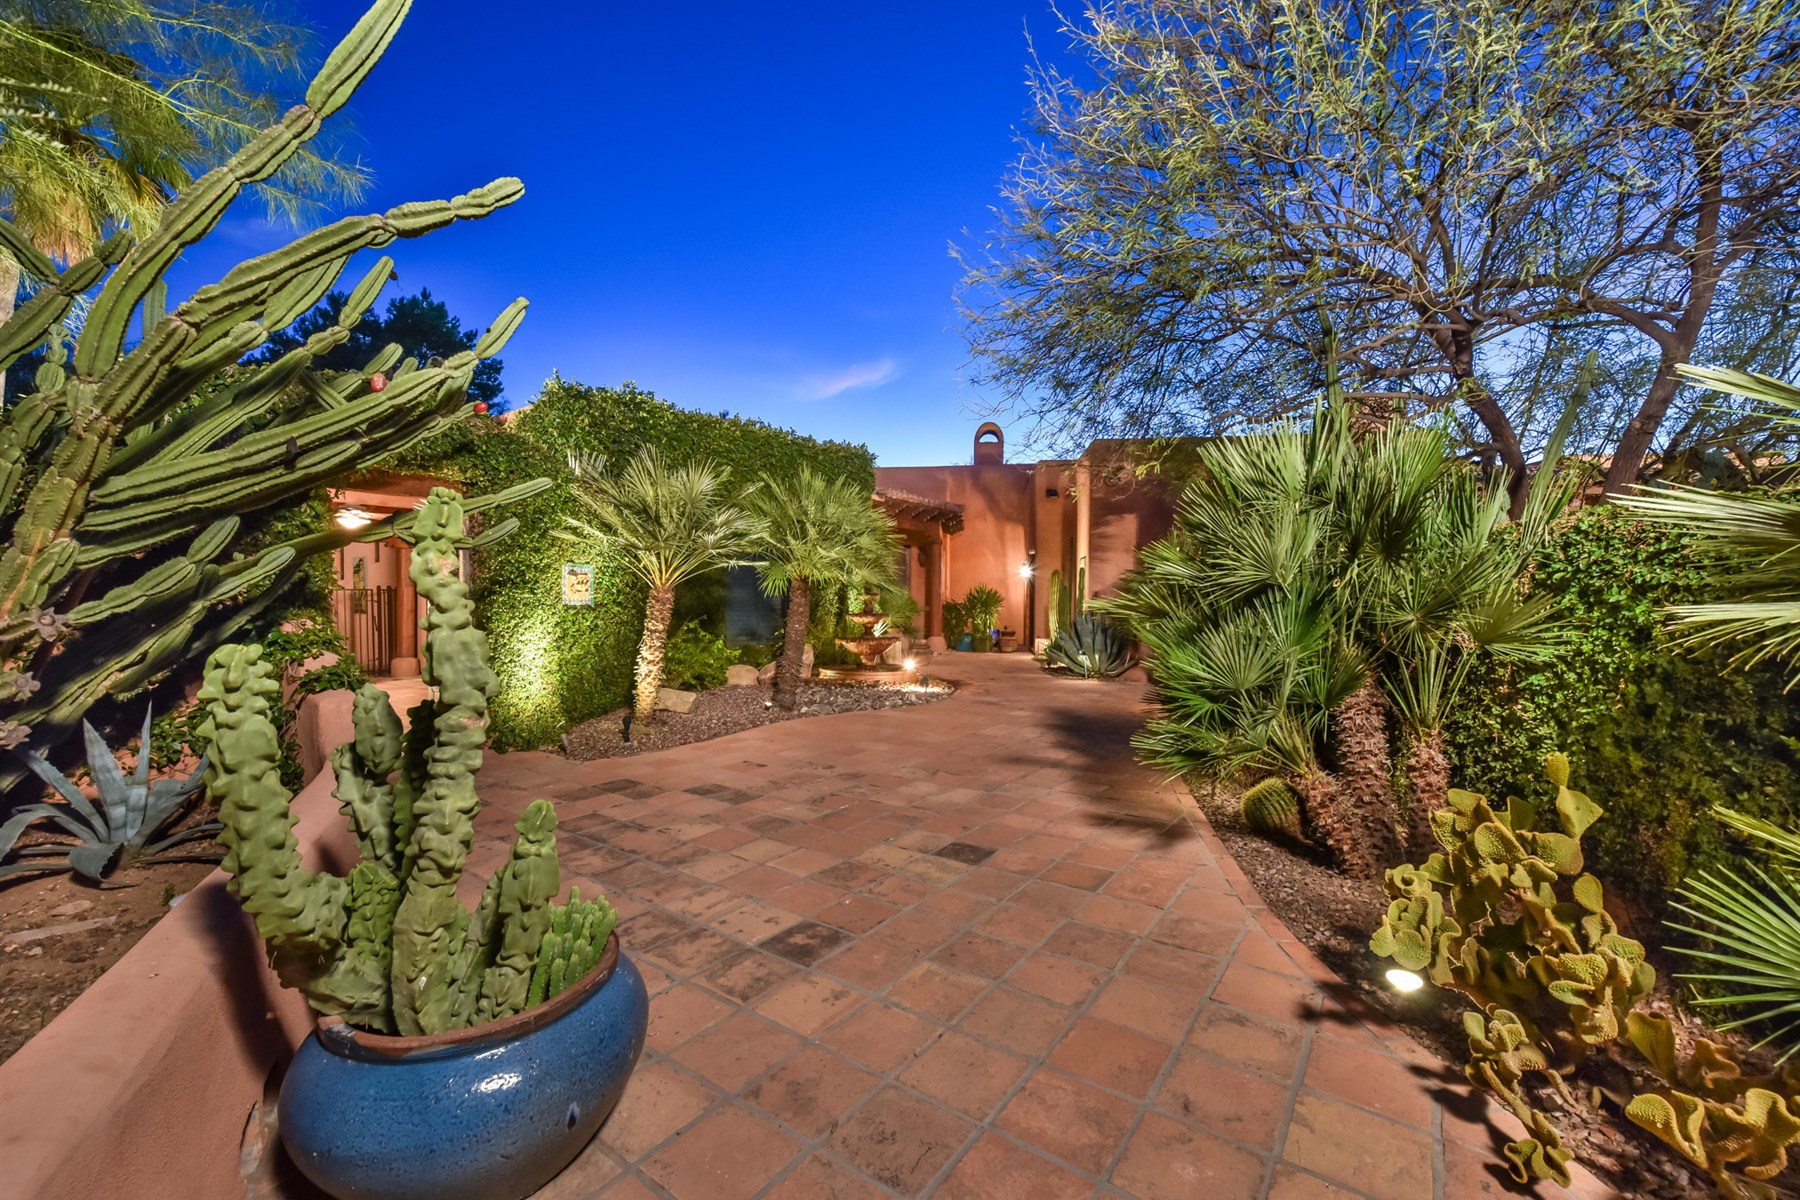 Single Family Home for Sale at Magnificent Spanish hacienda style home 5783 E Via Los Caballos Paradise Valley, Arizona 85253 United States